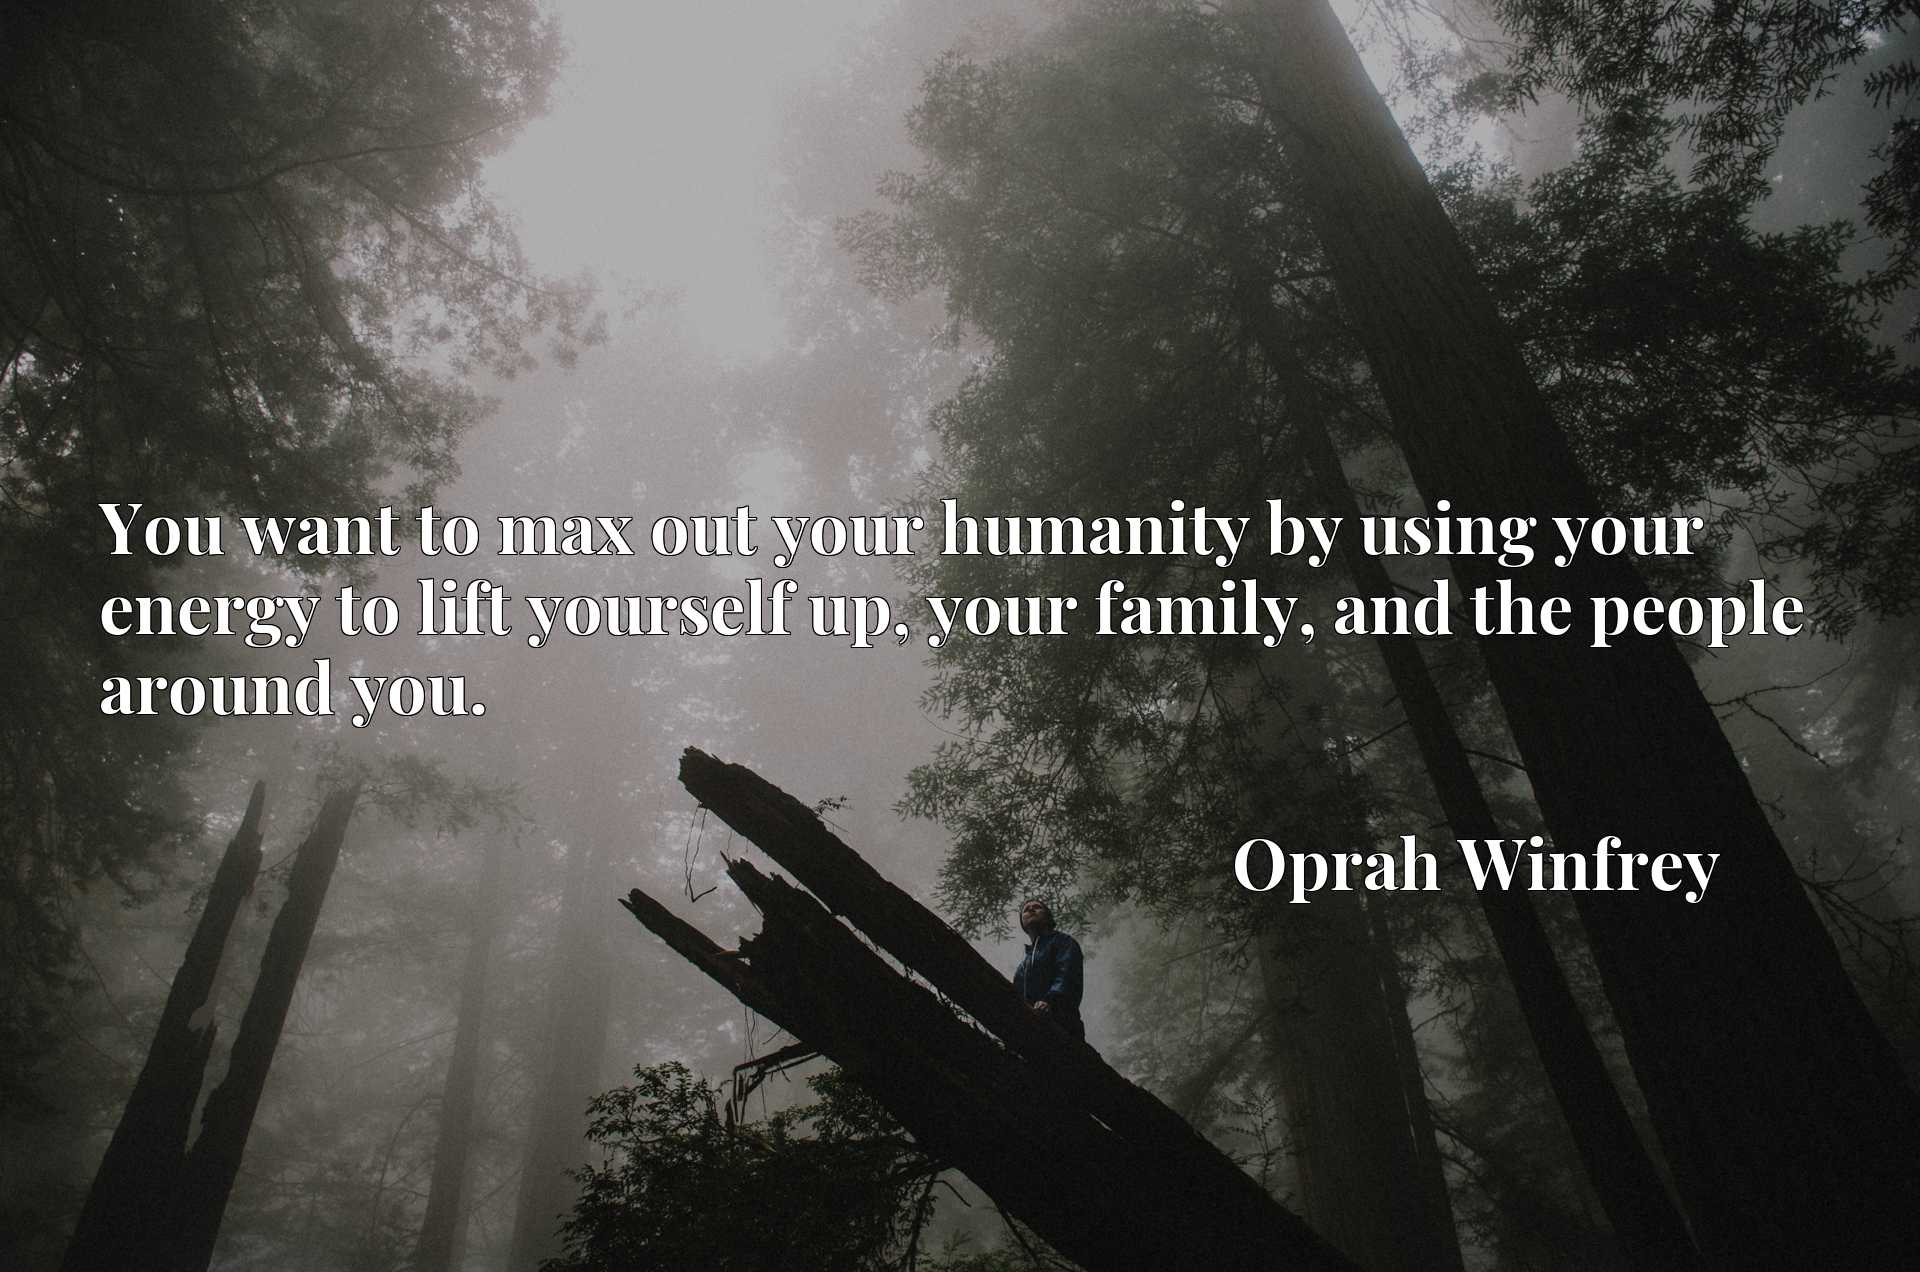 You want to max out your humanity by using your energy to lift yourself up, your family, and the people around you.